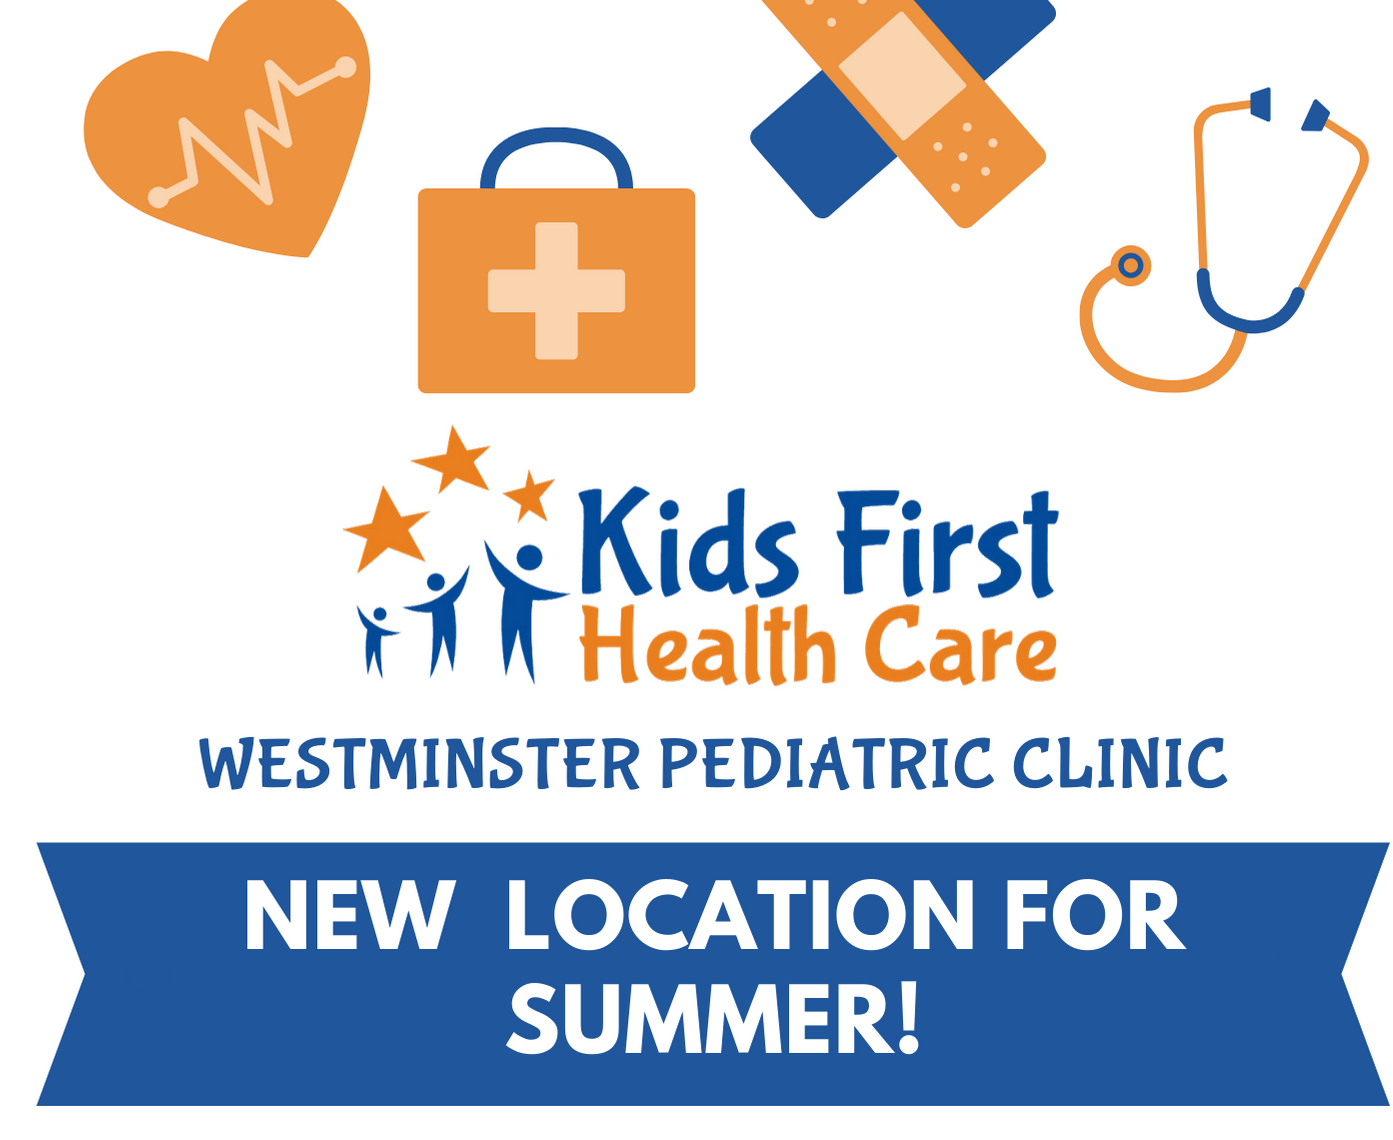 Kids First Health Care pediatric clinic; New Location for Summer!